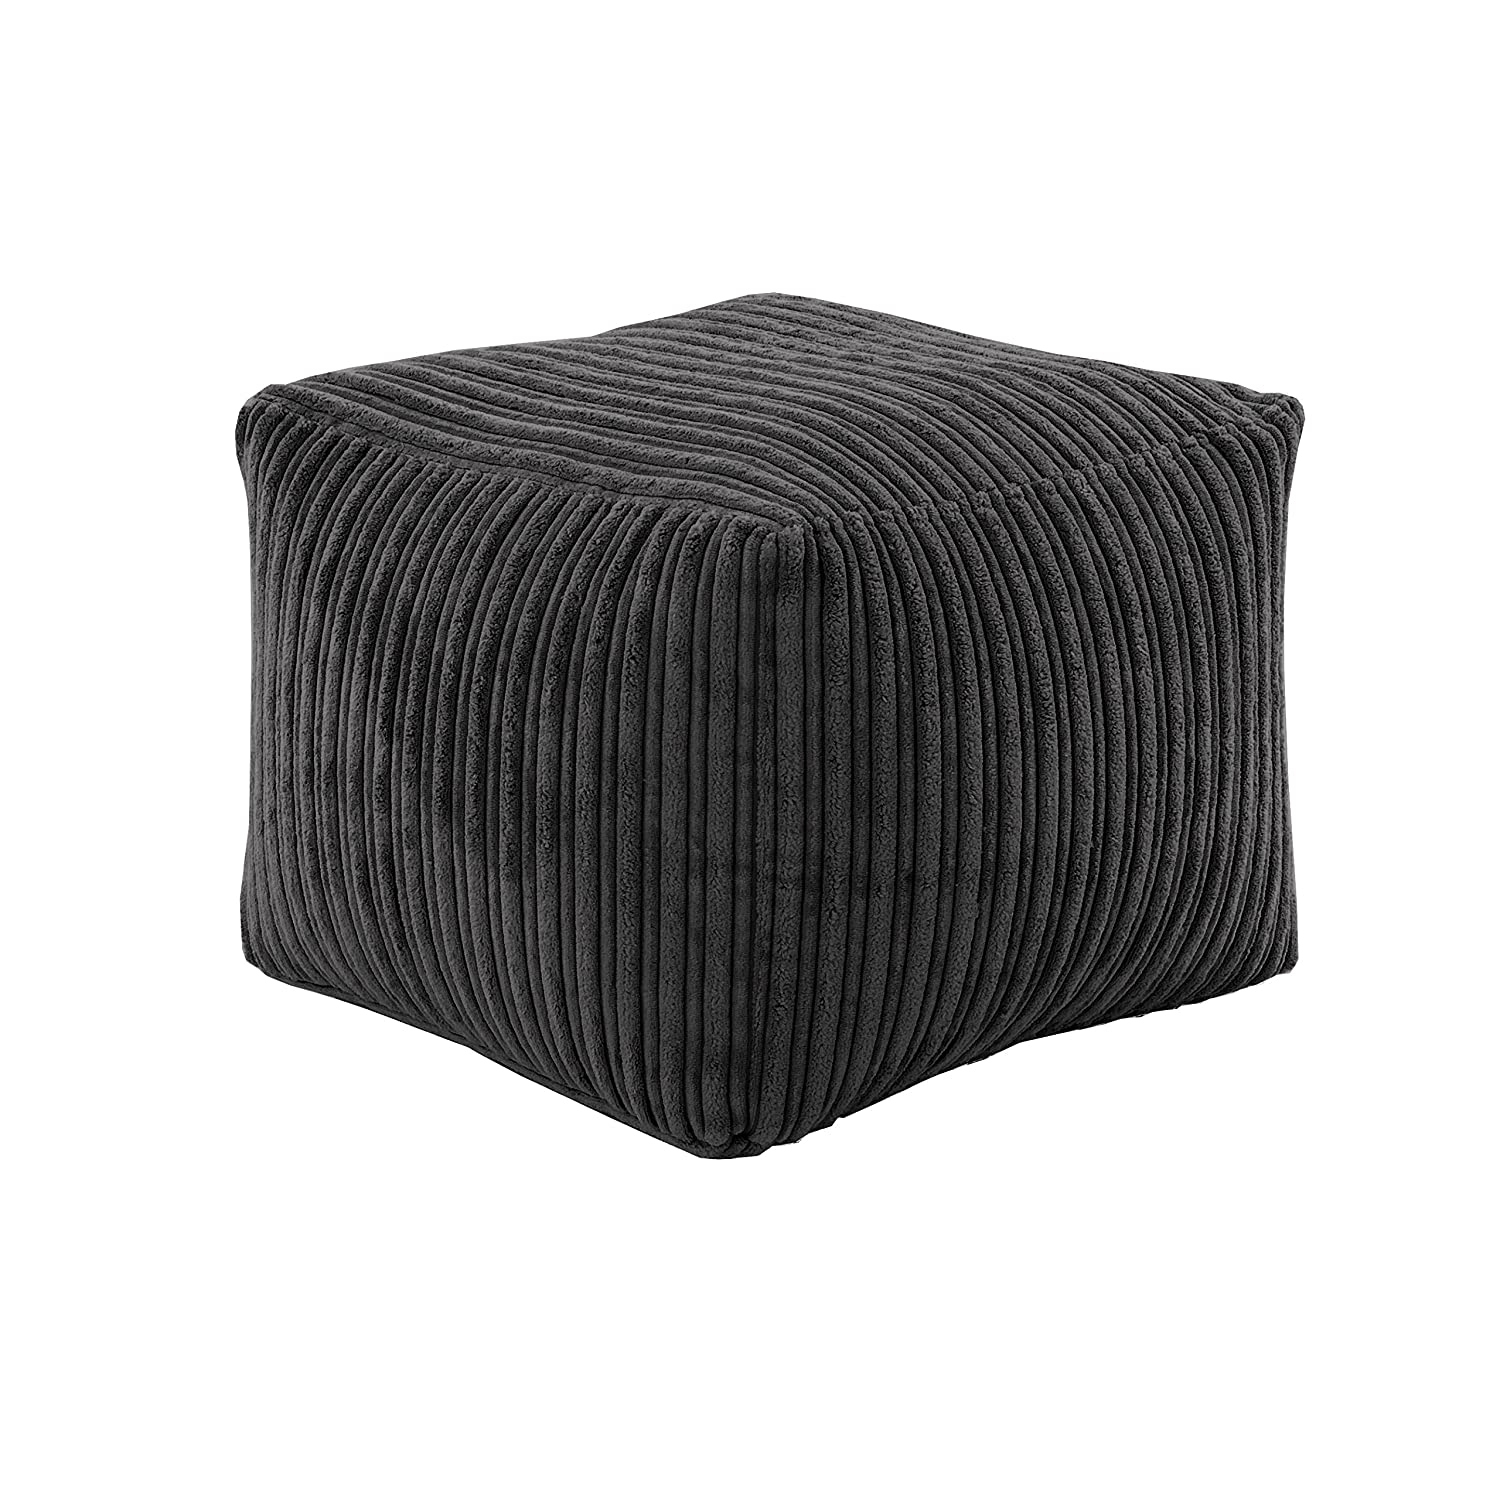 Hippo Black Square Bean Bag Footstool Pouffe Seat in Soft Jumbo Cord Fabric